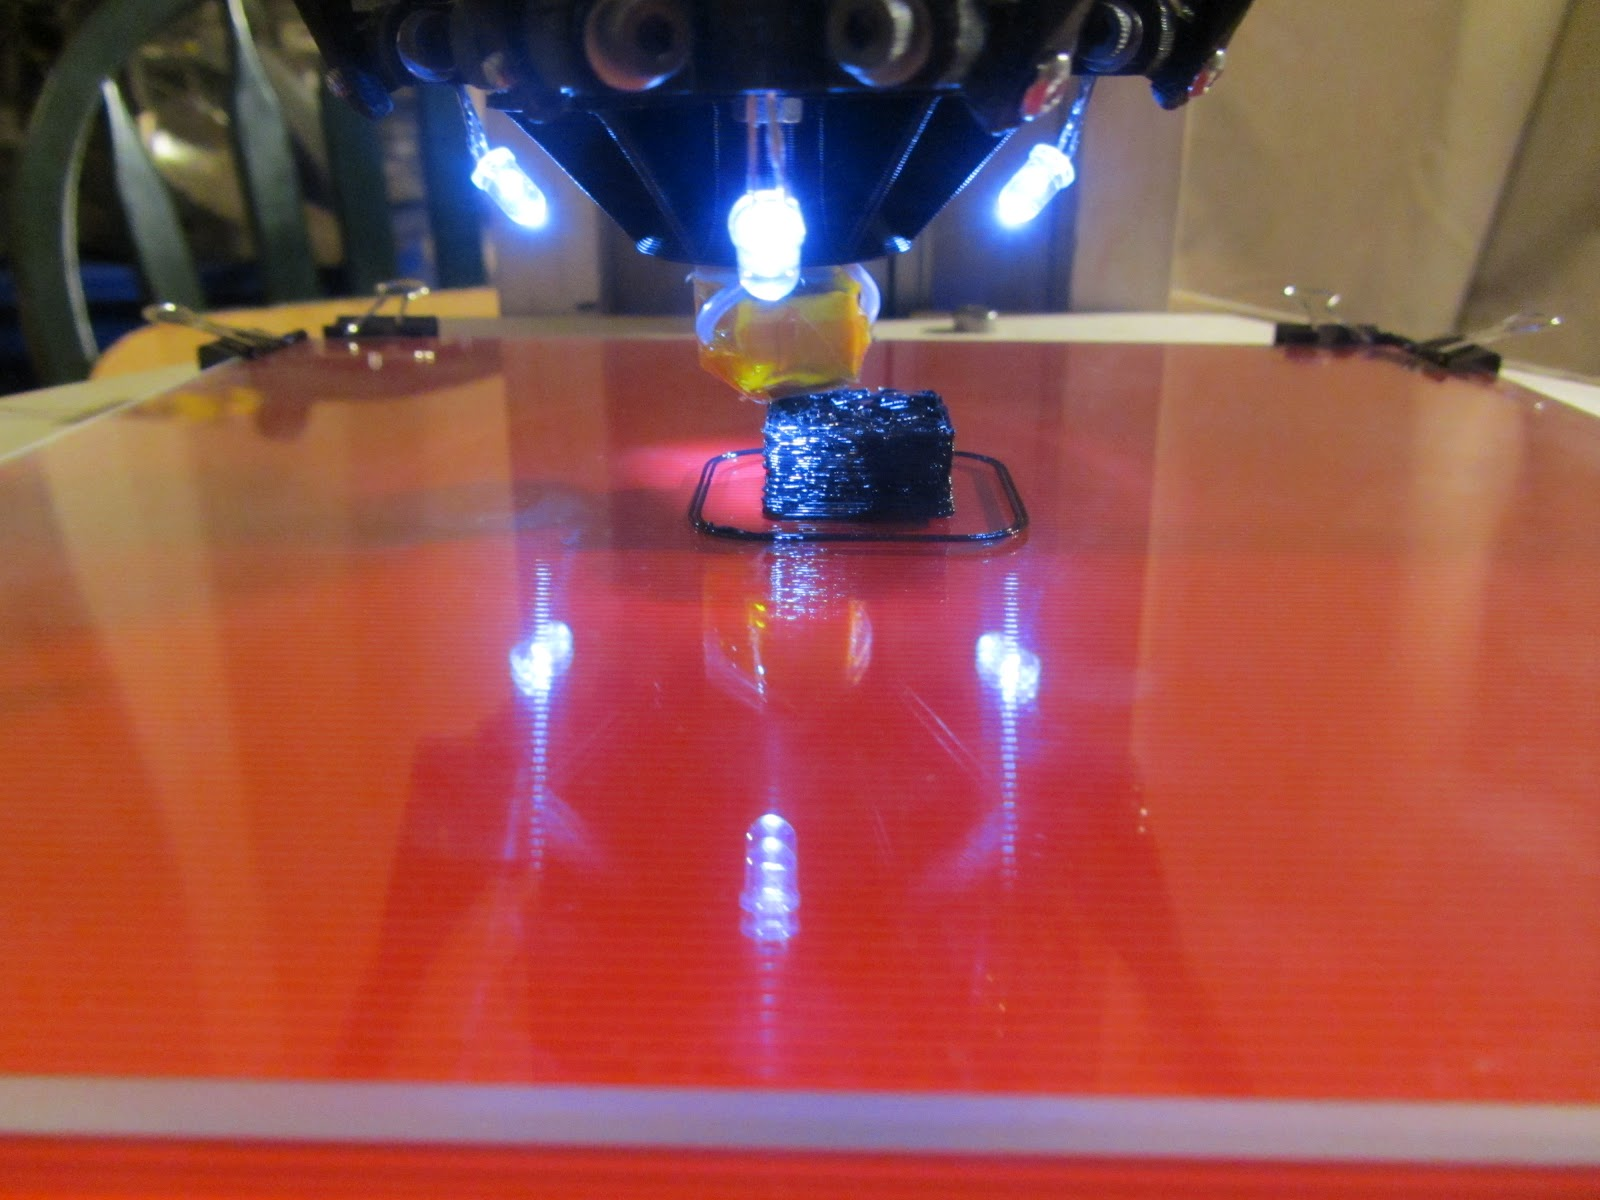 Drew's Robots: Drew's Rostock: The long quest for a successfull print